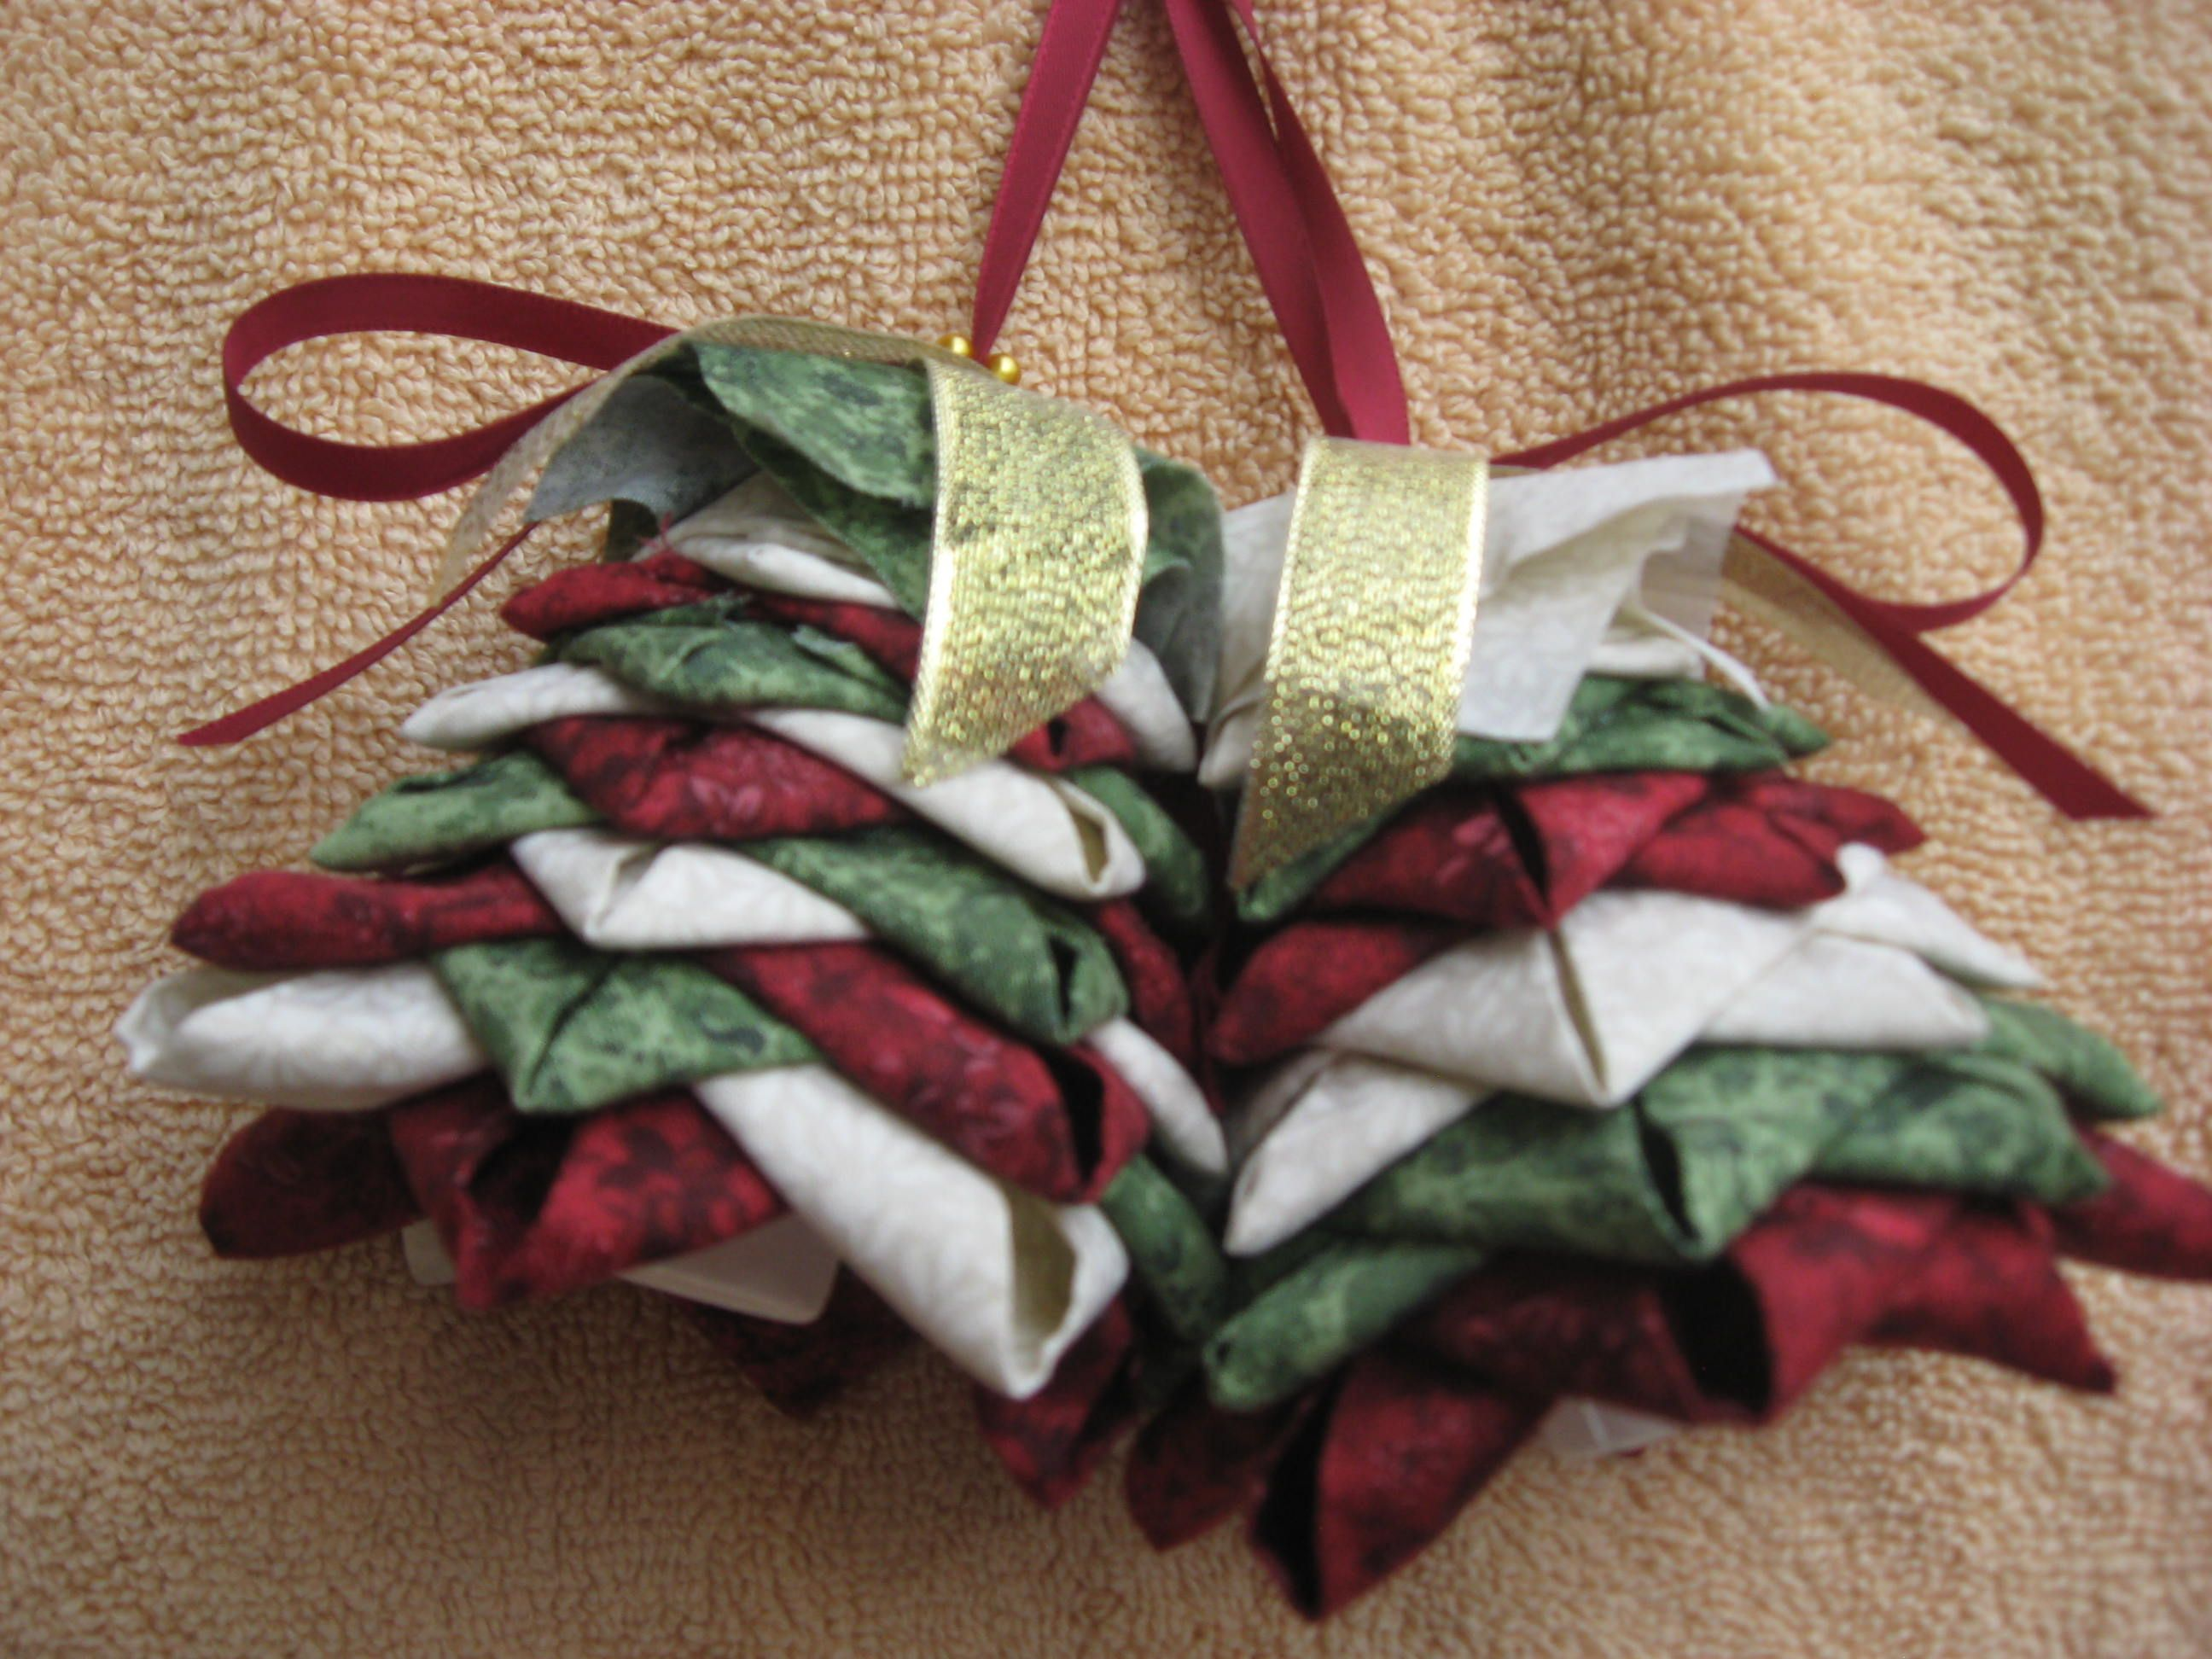 Folded fabric christmas ornaments patterns - Christmas Ornaments And Holiday Craft Decorations Easter 4th Of July Patriotic Valentines Day Ribbon Of Hope Cancer Awareness Crafts Folded Fabric